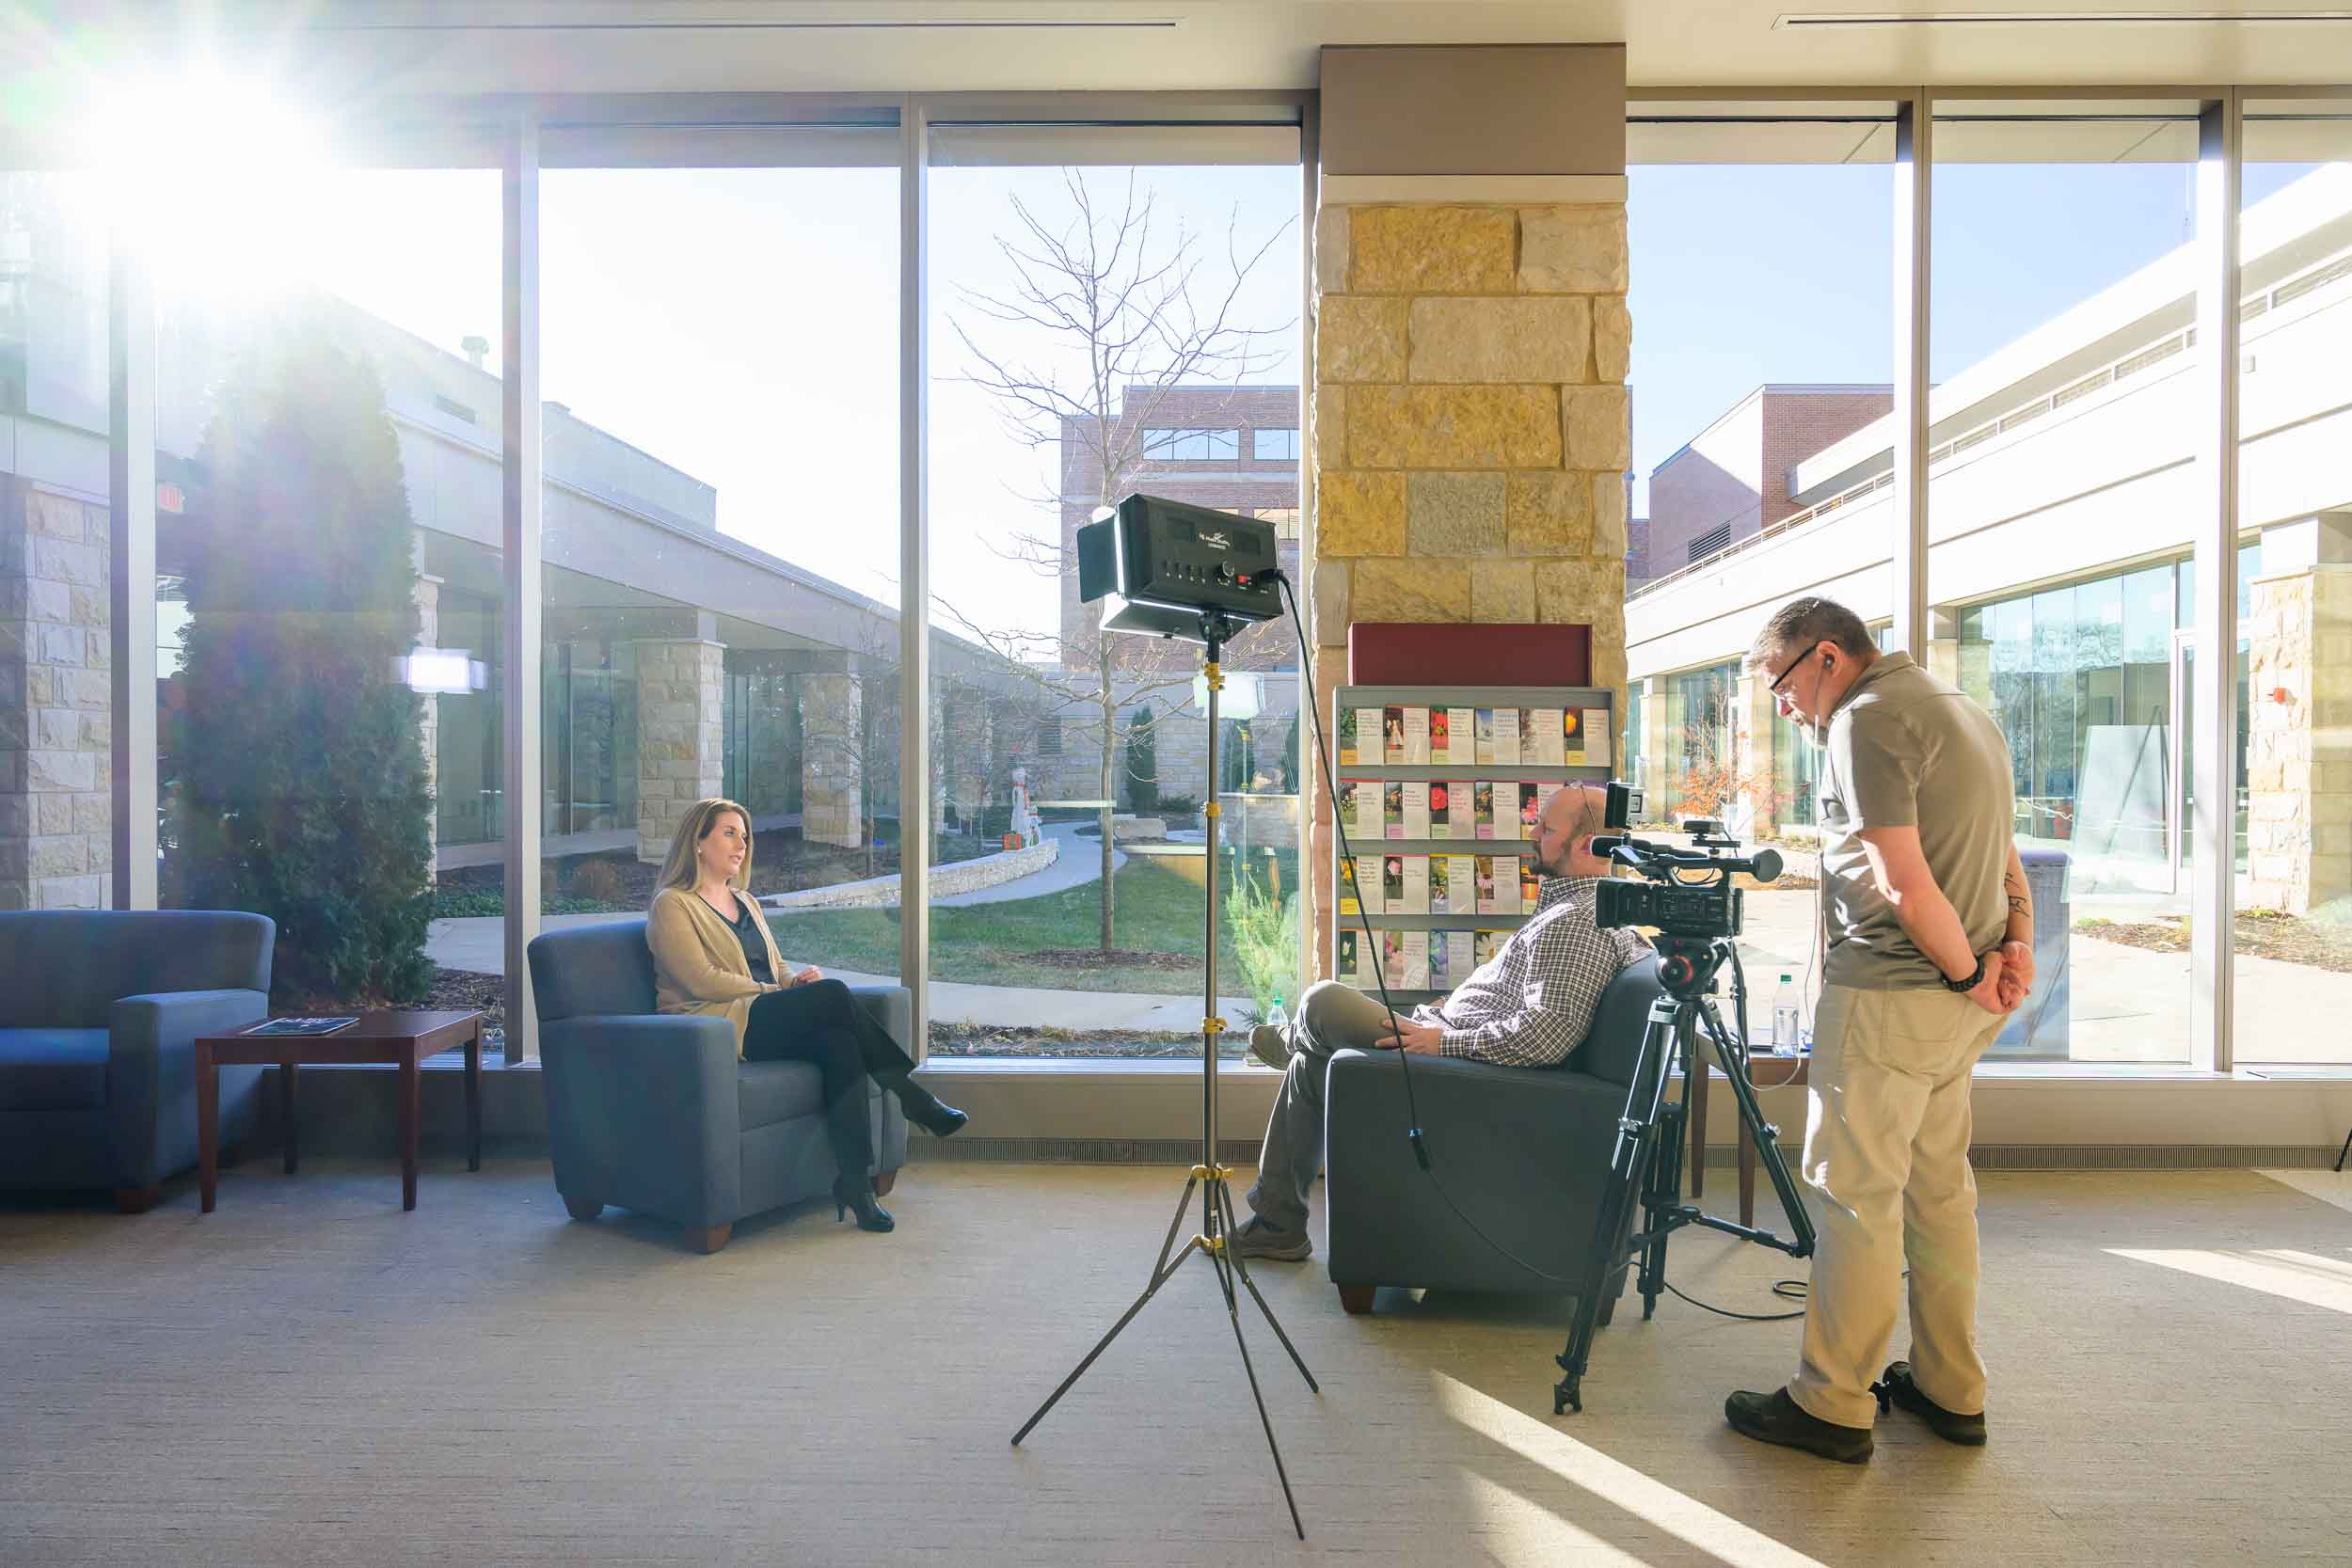 ascension-behind-the-scenes-business-commercial-professional-photographer-graham-images-washatka-wisconsin-appleton-green-bay-008-2128-blog.jpg